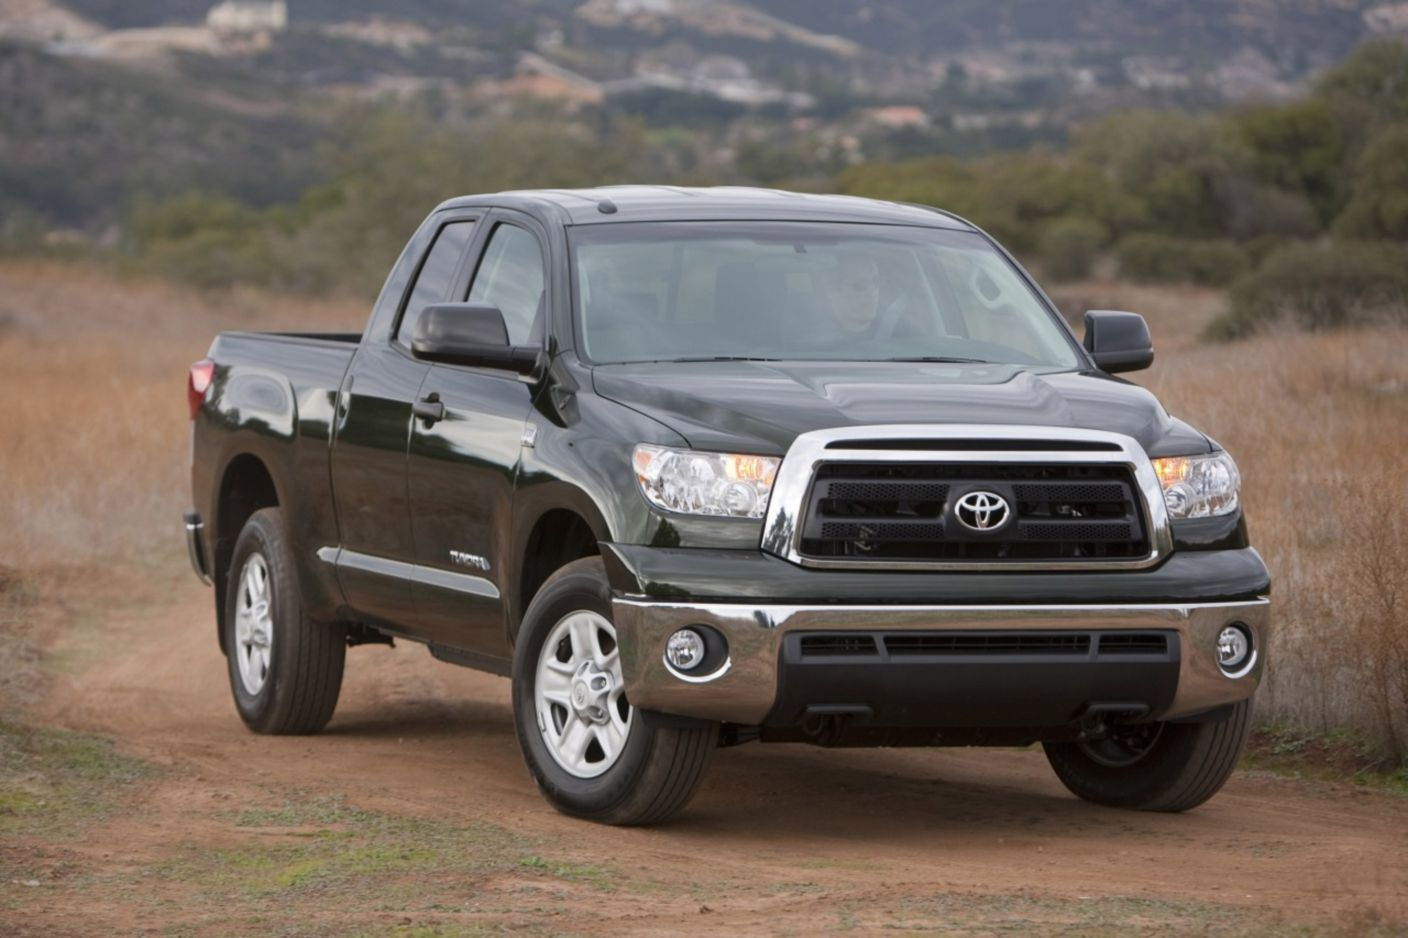 Download free HD Pickup Trucks Toyota Tundra Wallpaper, image